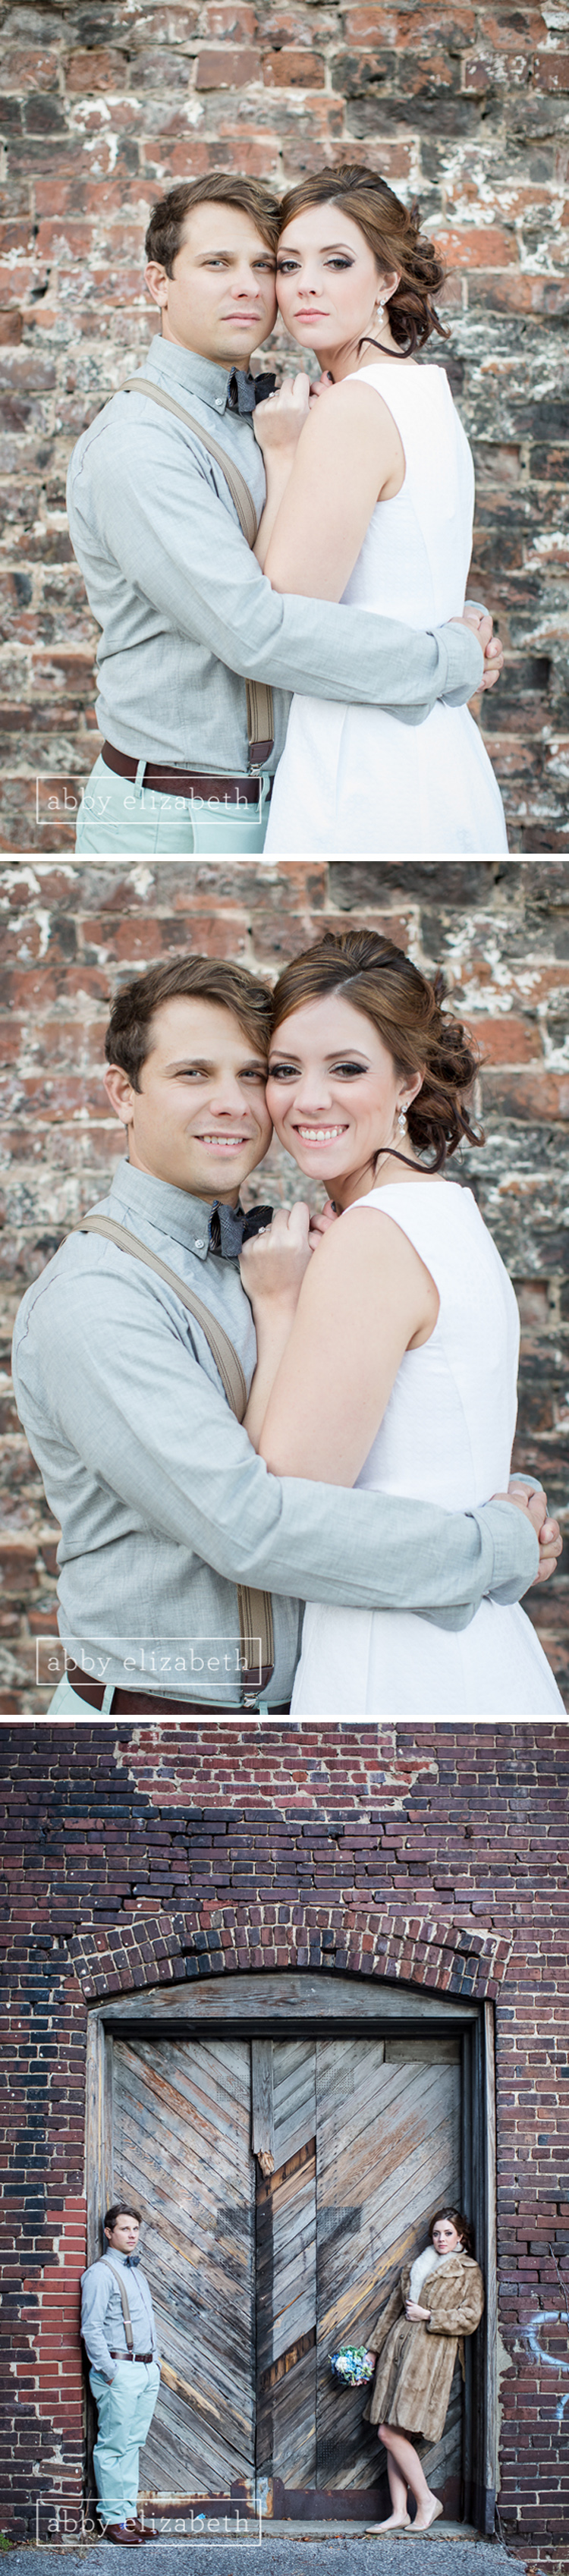 Downtown_Knoxville_Wedding_Loft_Fall_Wedding_20.jpg